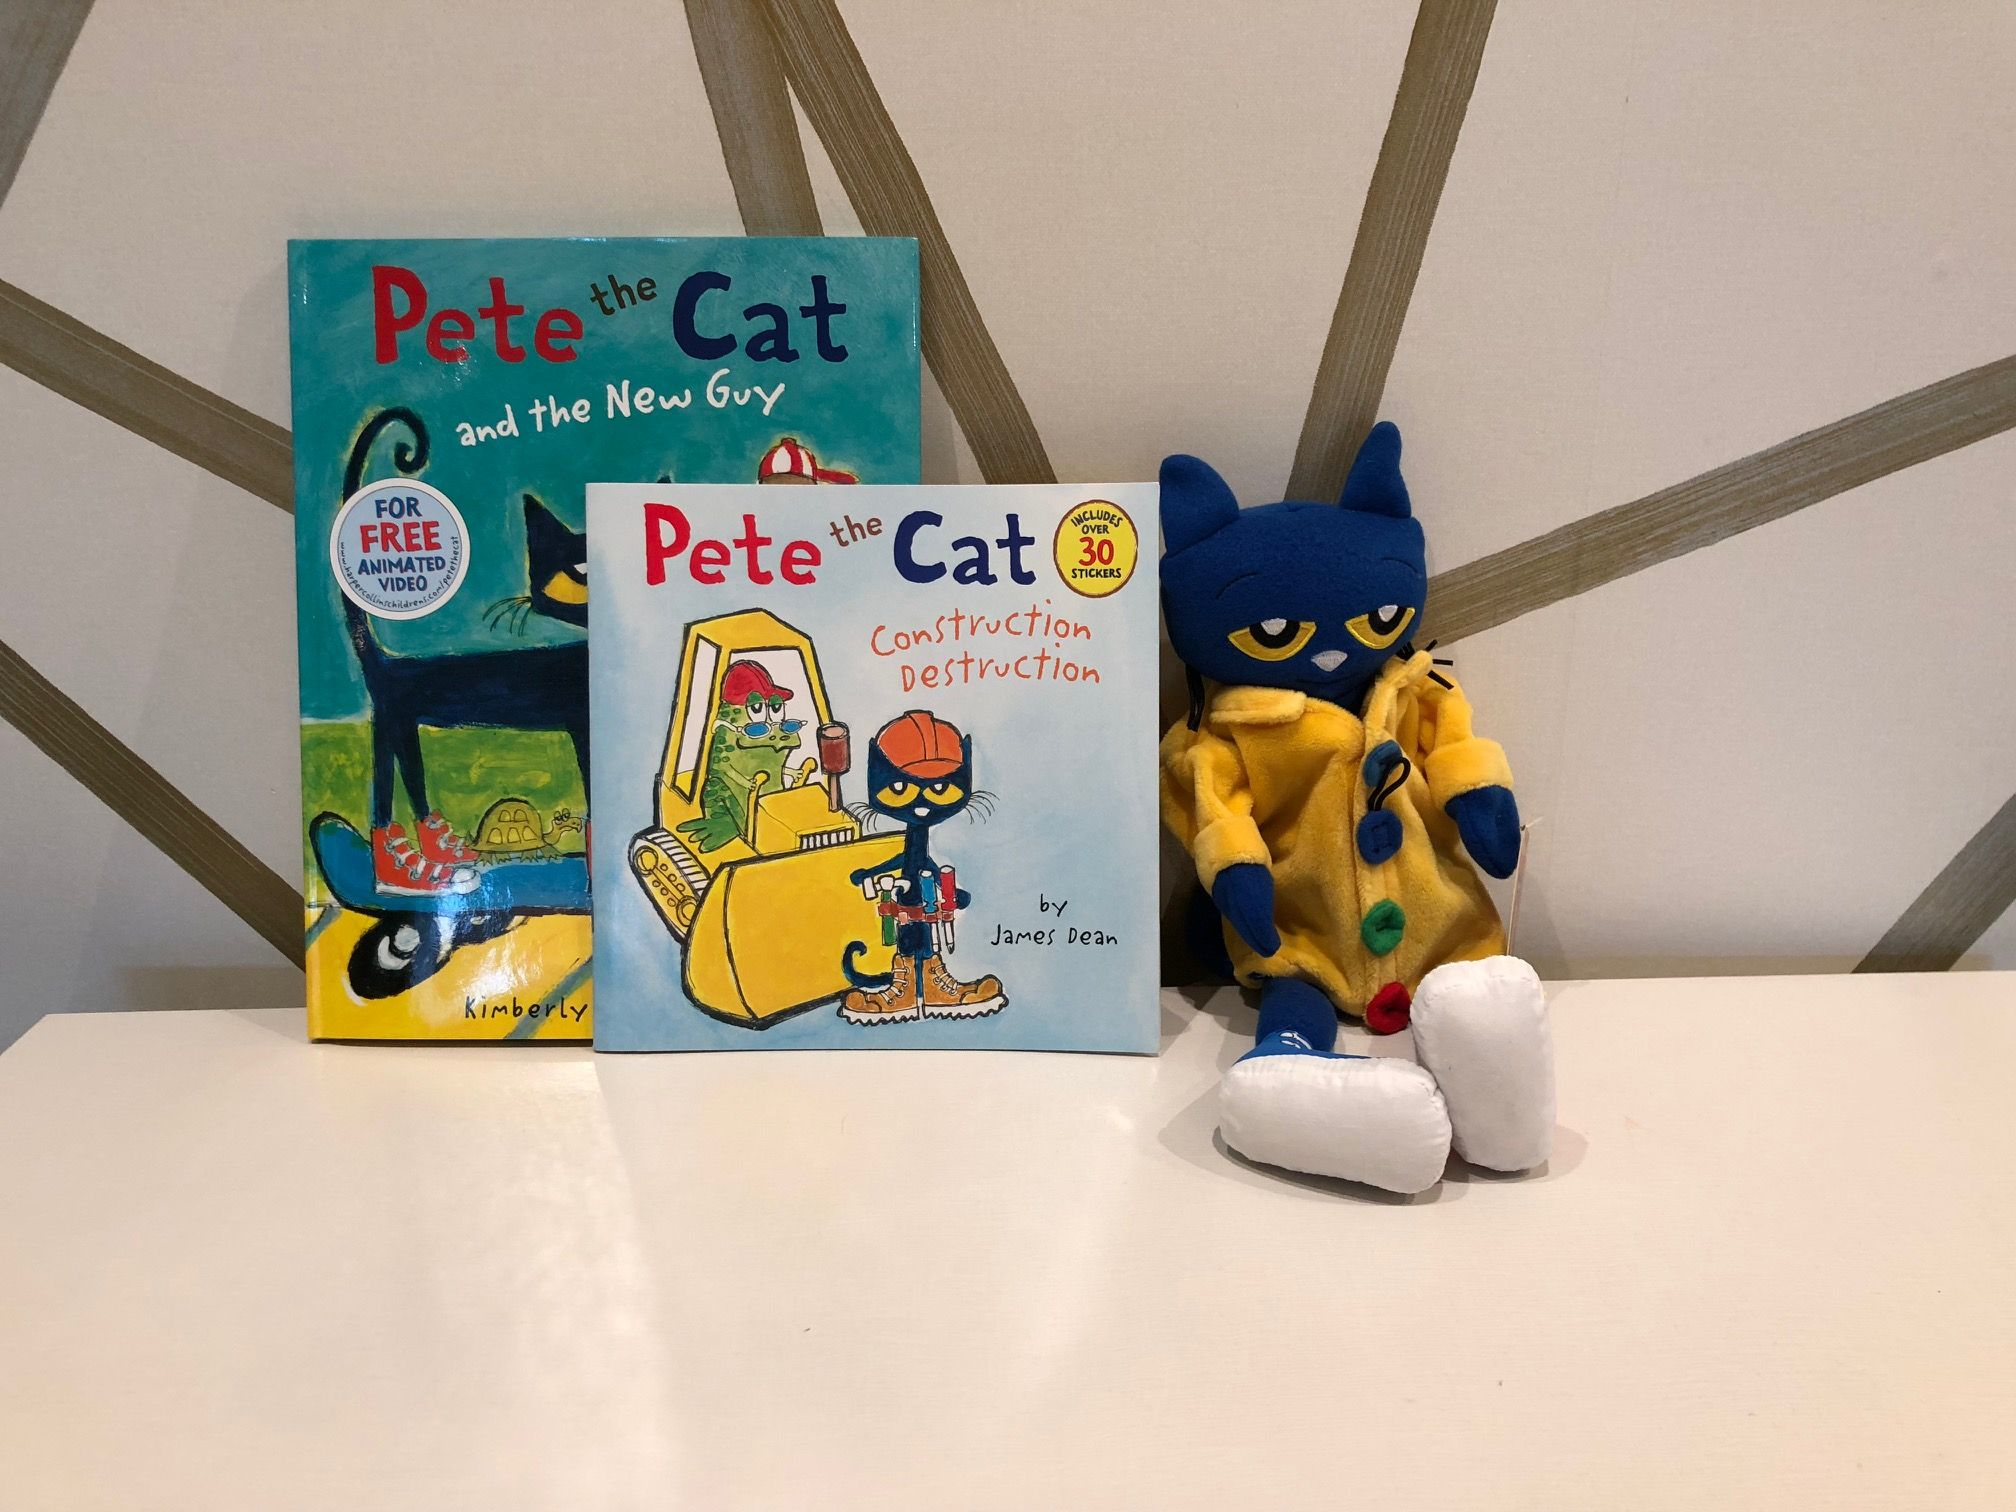 The Pete the Cat Animated Kid Series is Here! PeteTheCat